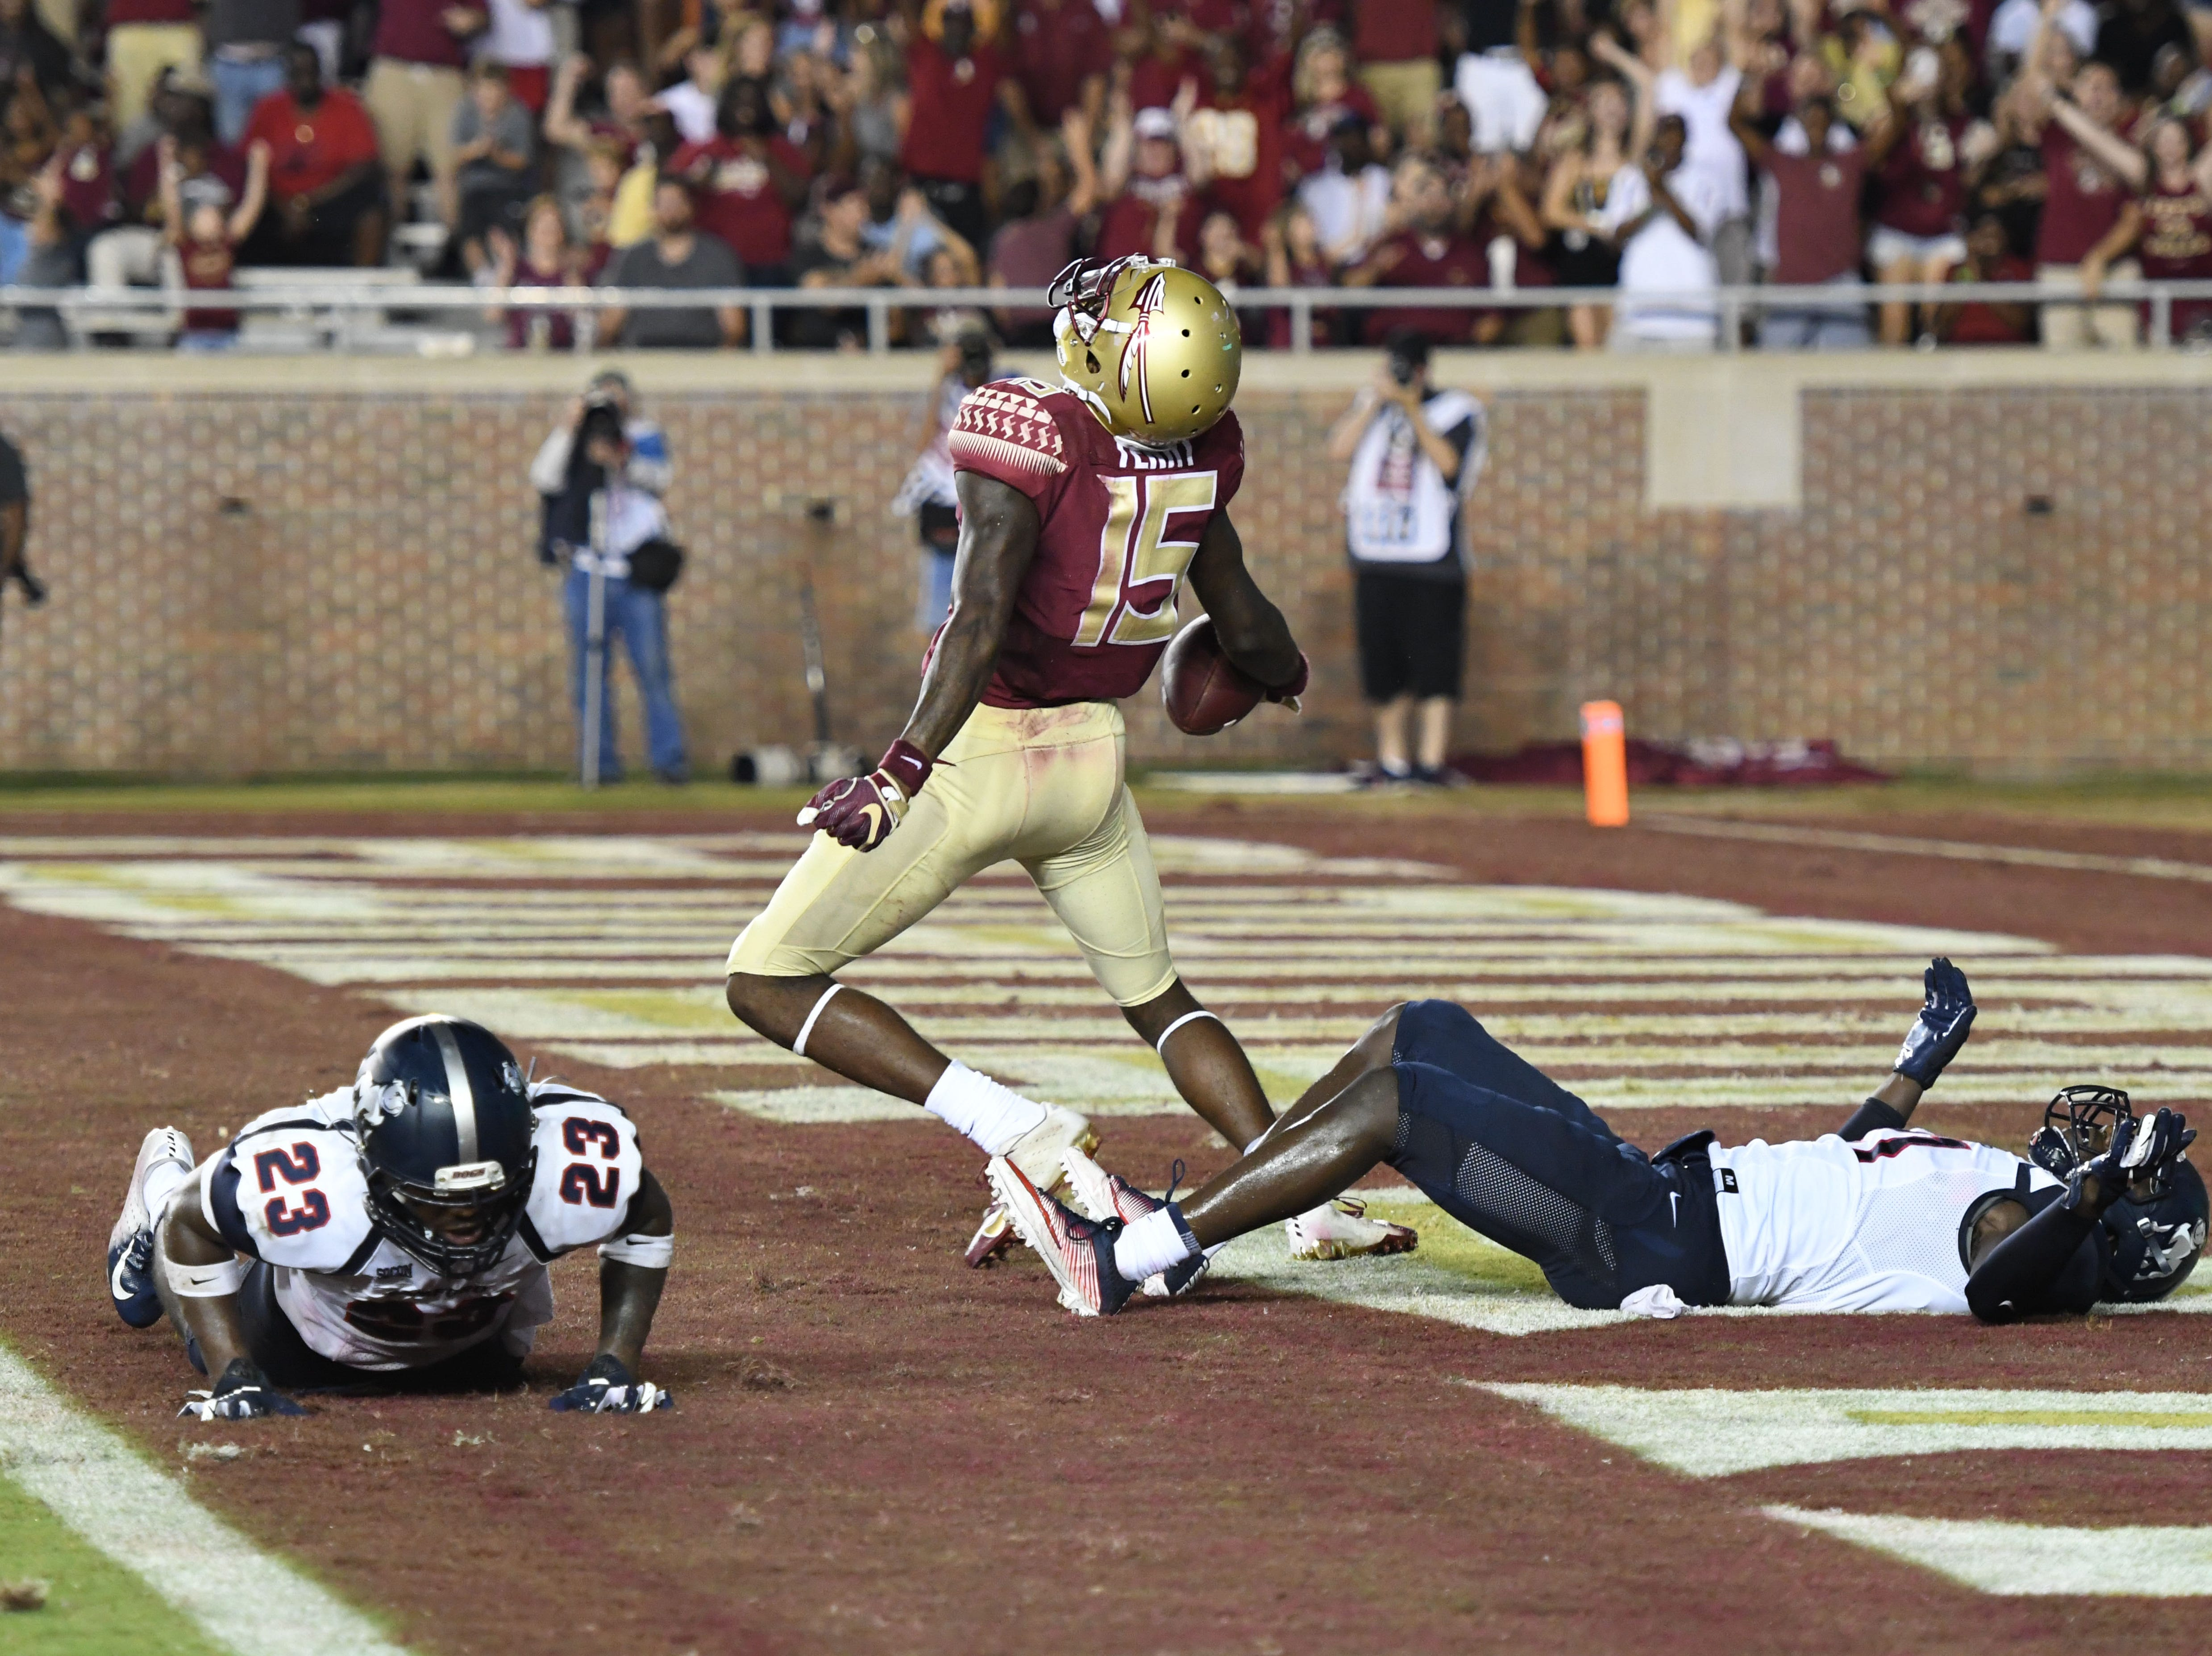 FSU redshirt freshman Tamorrion Terry (15) celebrating his second career touchdown in FSU's game against Samford on Saturday night at Doak Campbell Stadium.